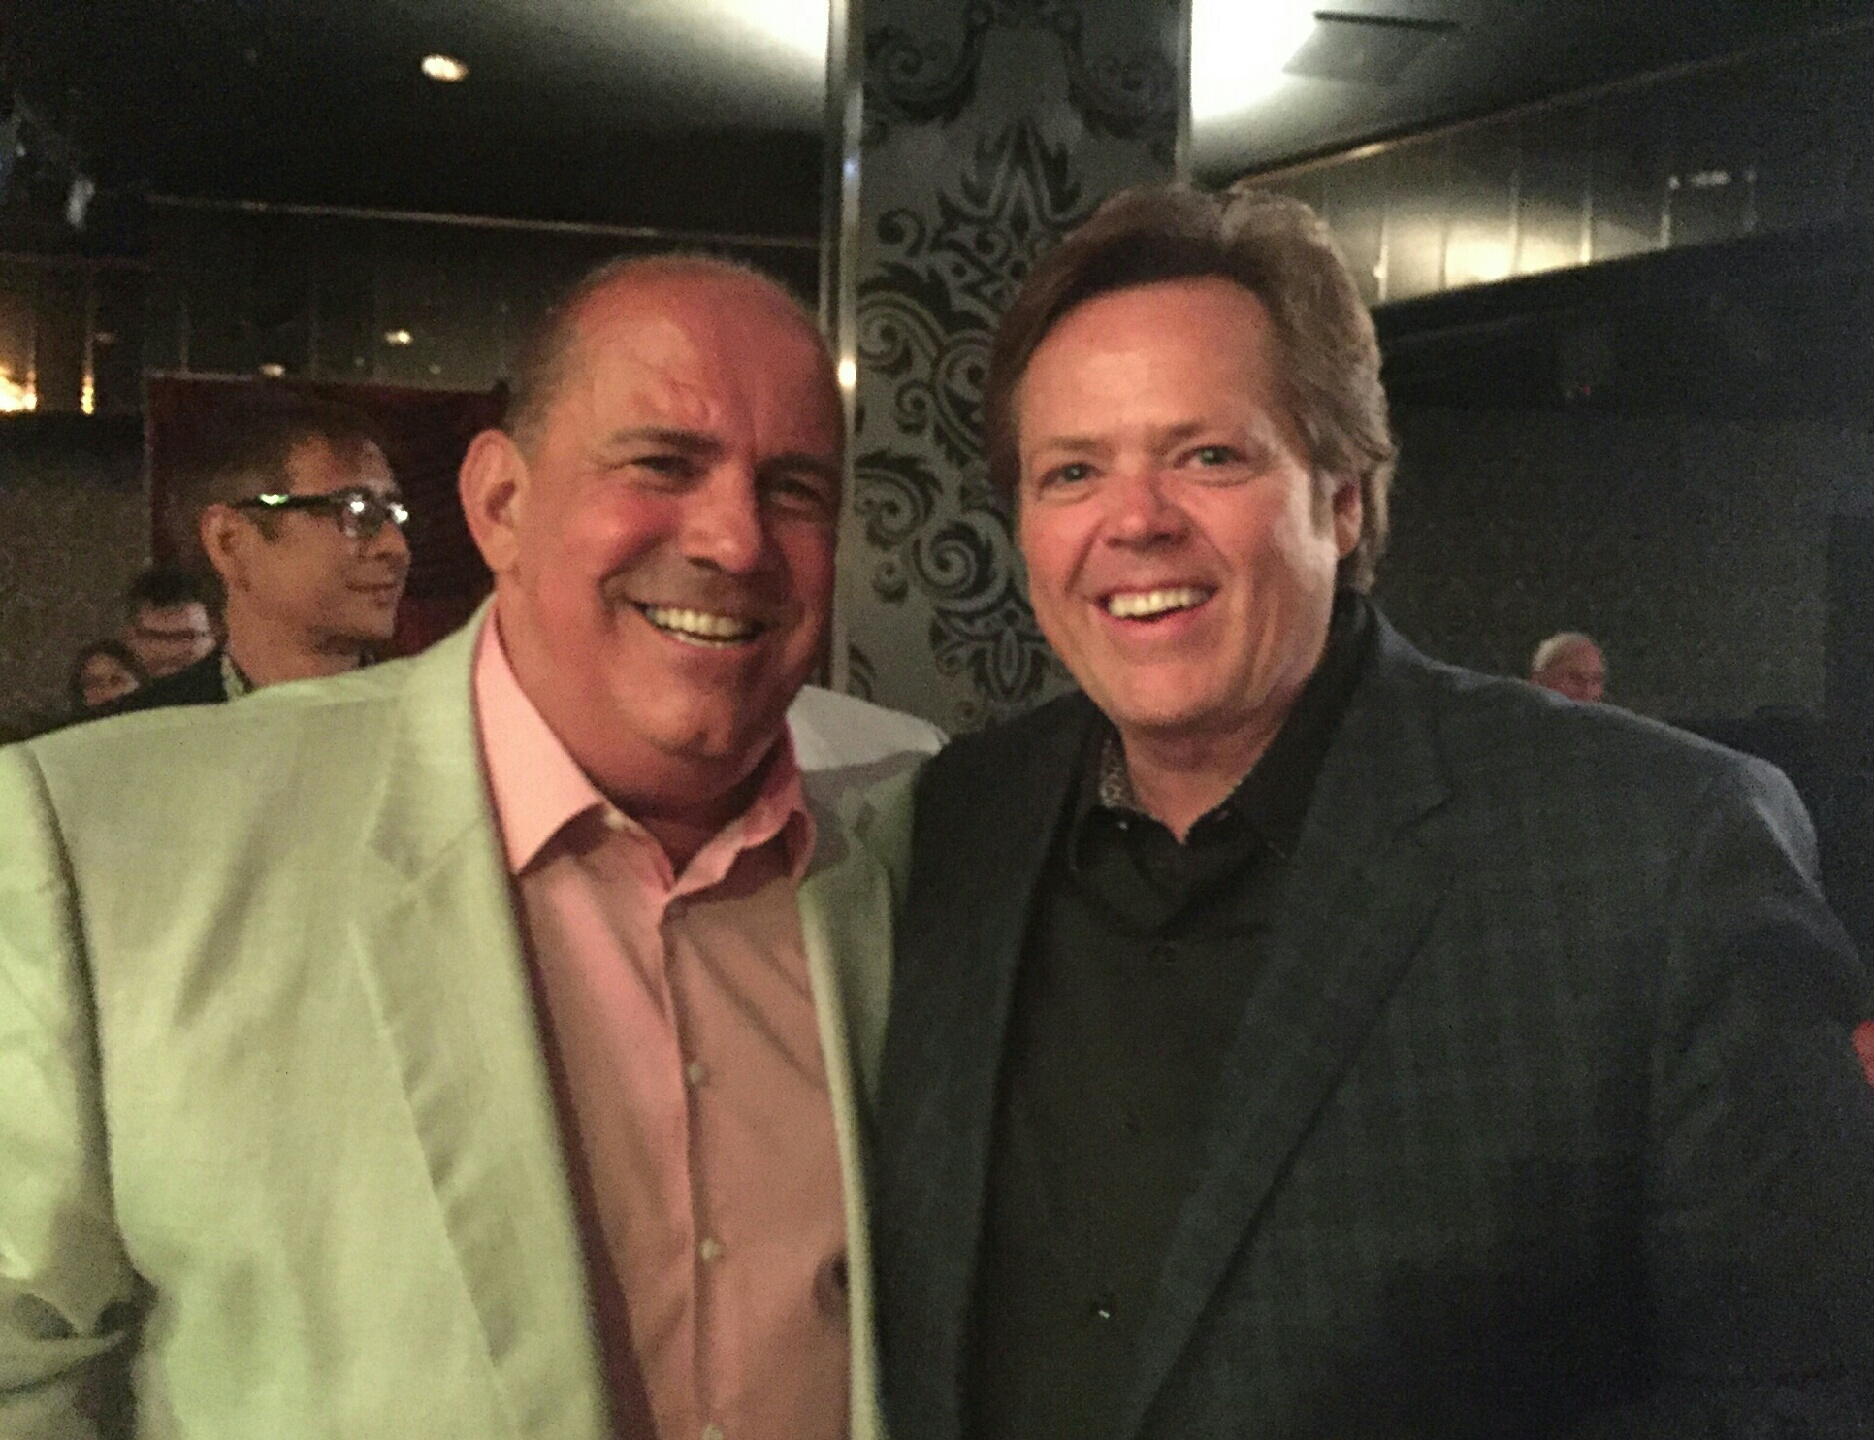 With Jimmy Osmond